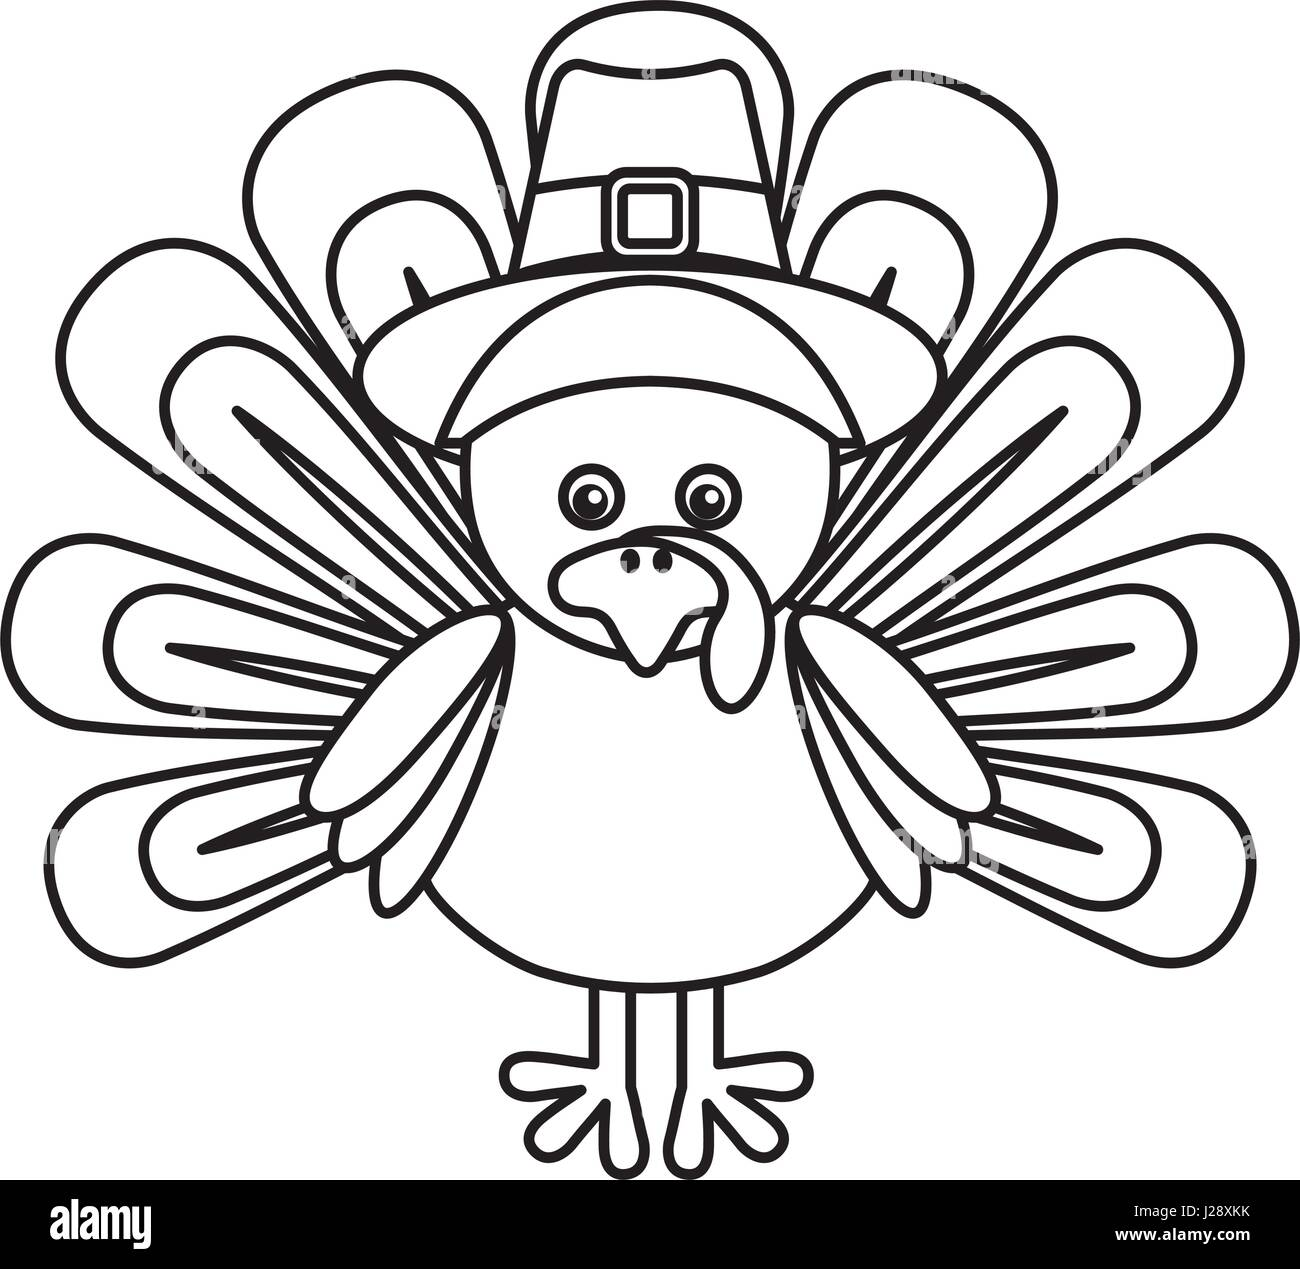 Thanksgiving turkey character icon - Stock Image